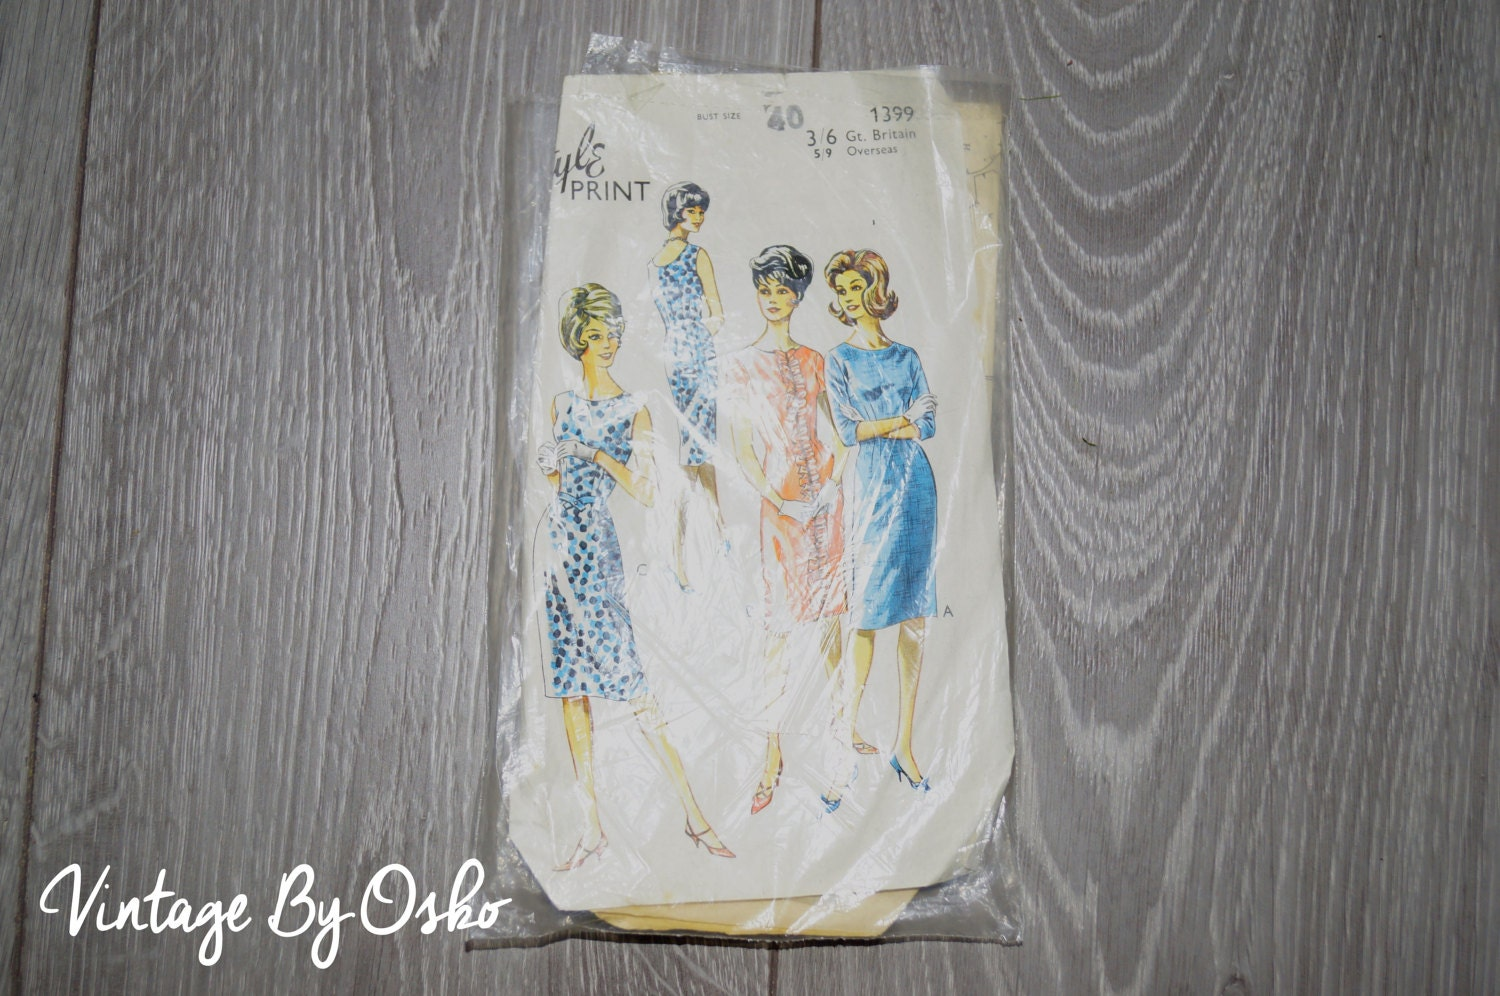 Vintage sewing pattern vintage dress style patterns ltd for Vintage sites like etsy